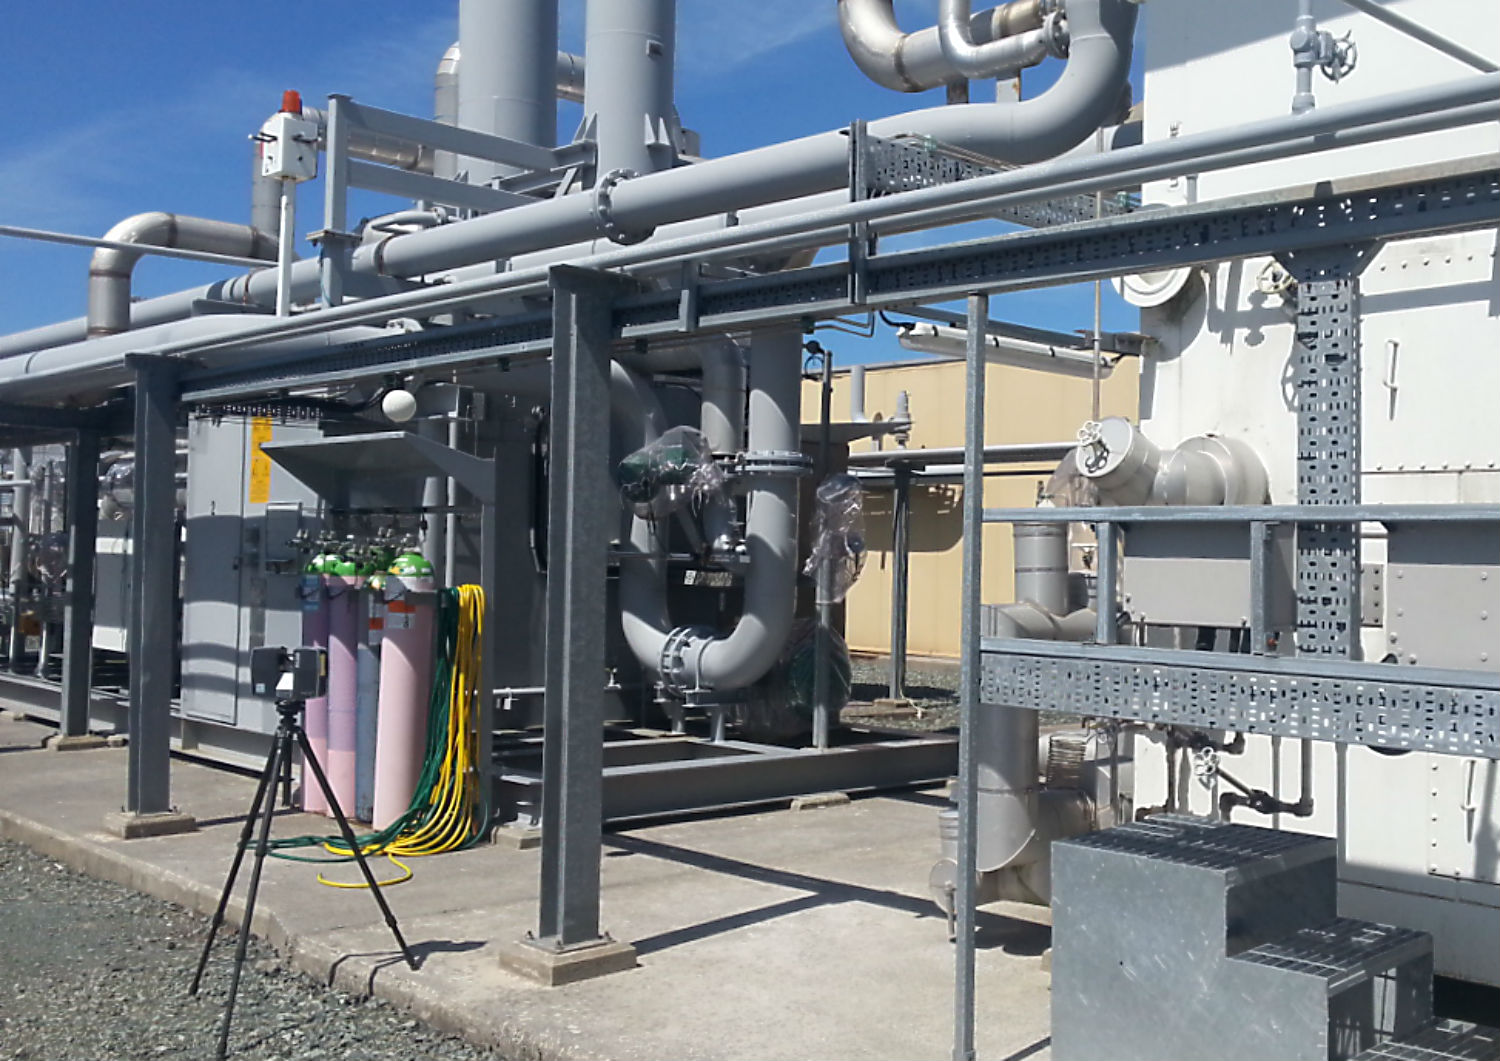 Piping layout design & mechanical engineering services to industry